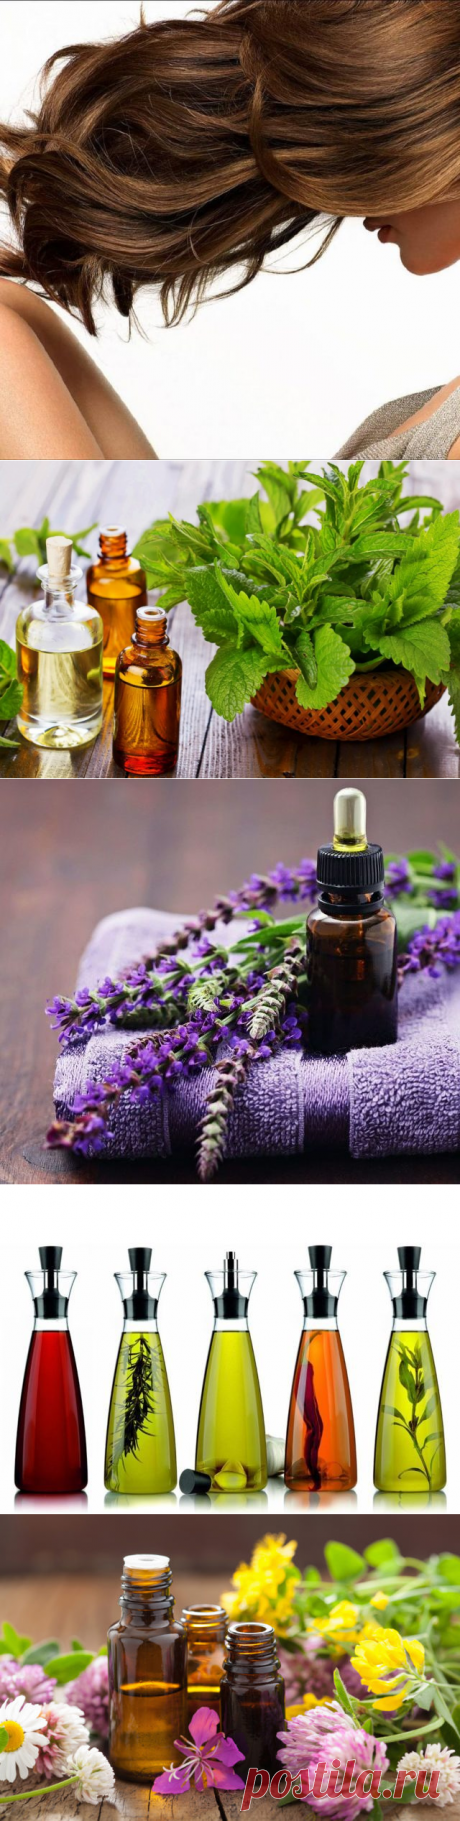 Essential oils for density and the volume of hair